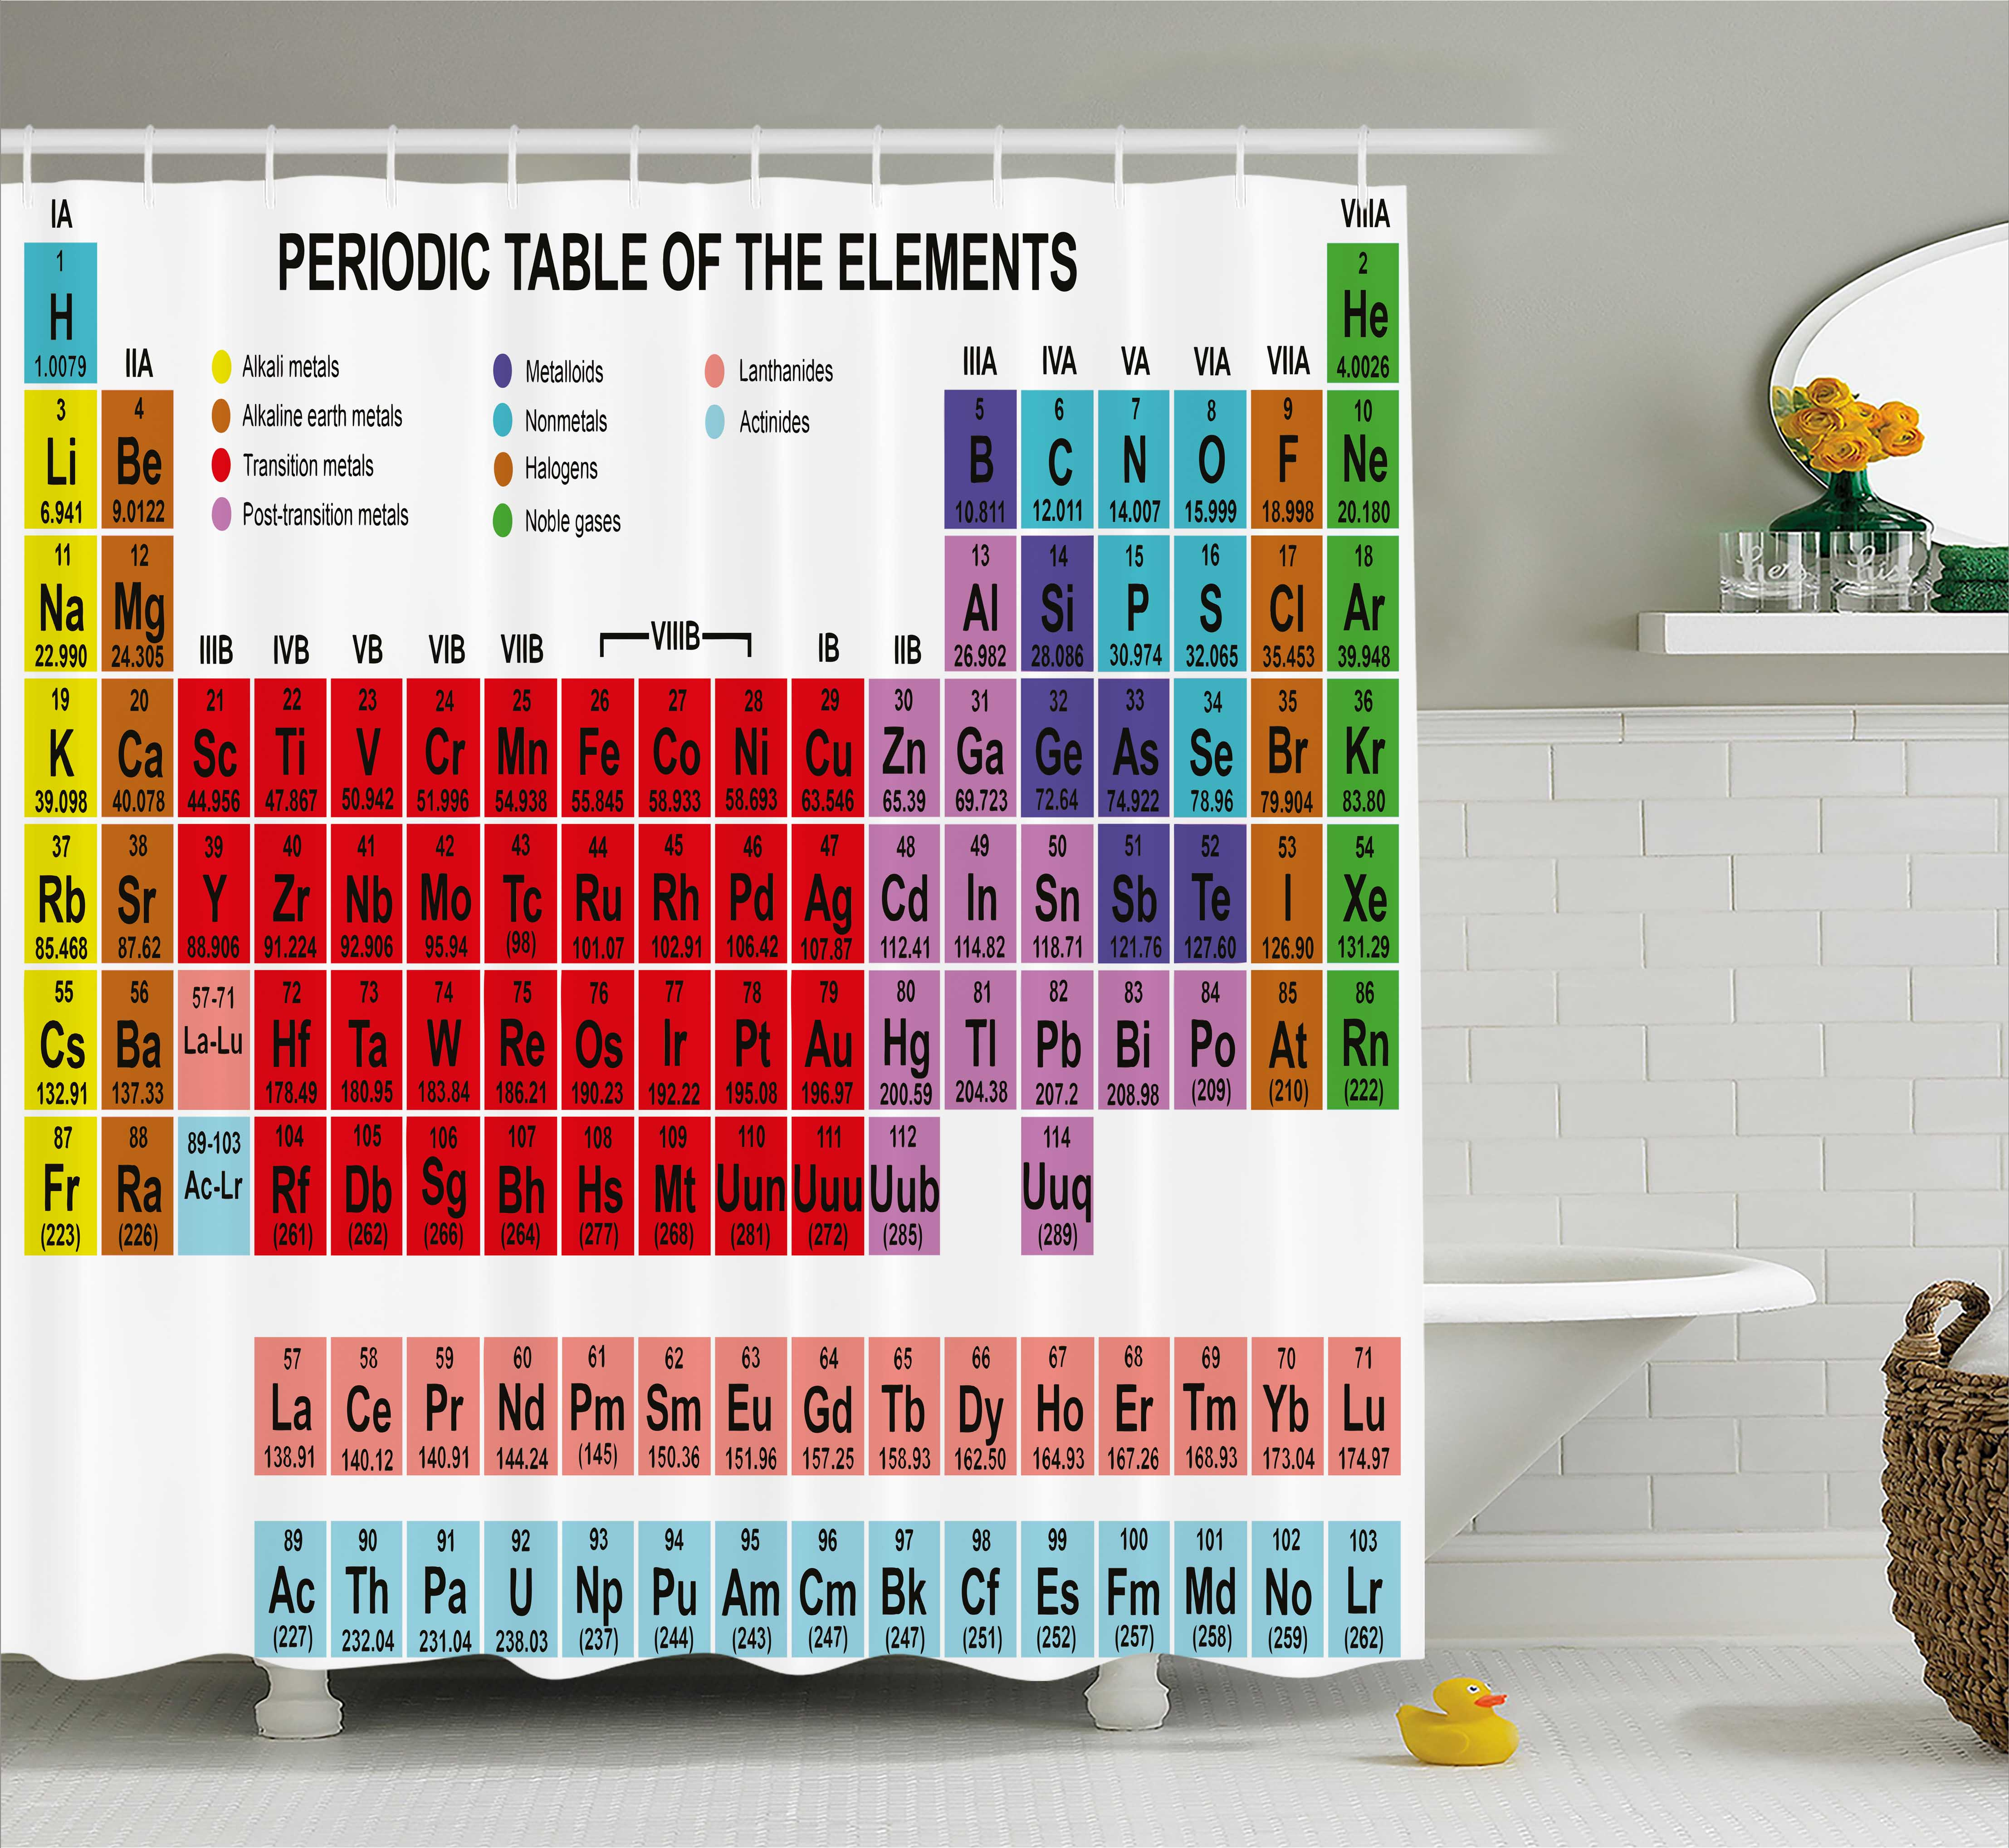 Periodic table shower curtain kids children educational science periodic table shower curtain kids children educational science chemistry for school students teachers art fabric bathroom set with hooks gamestrikefo Image collections